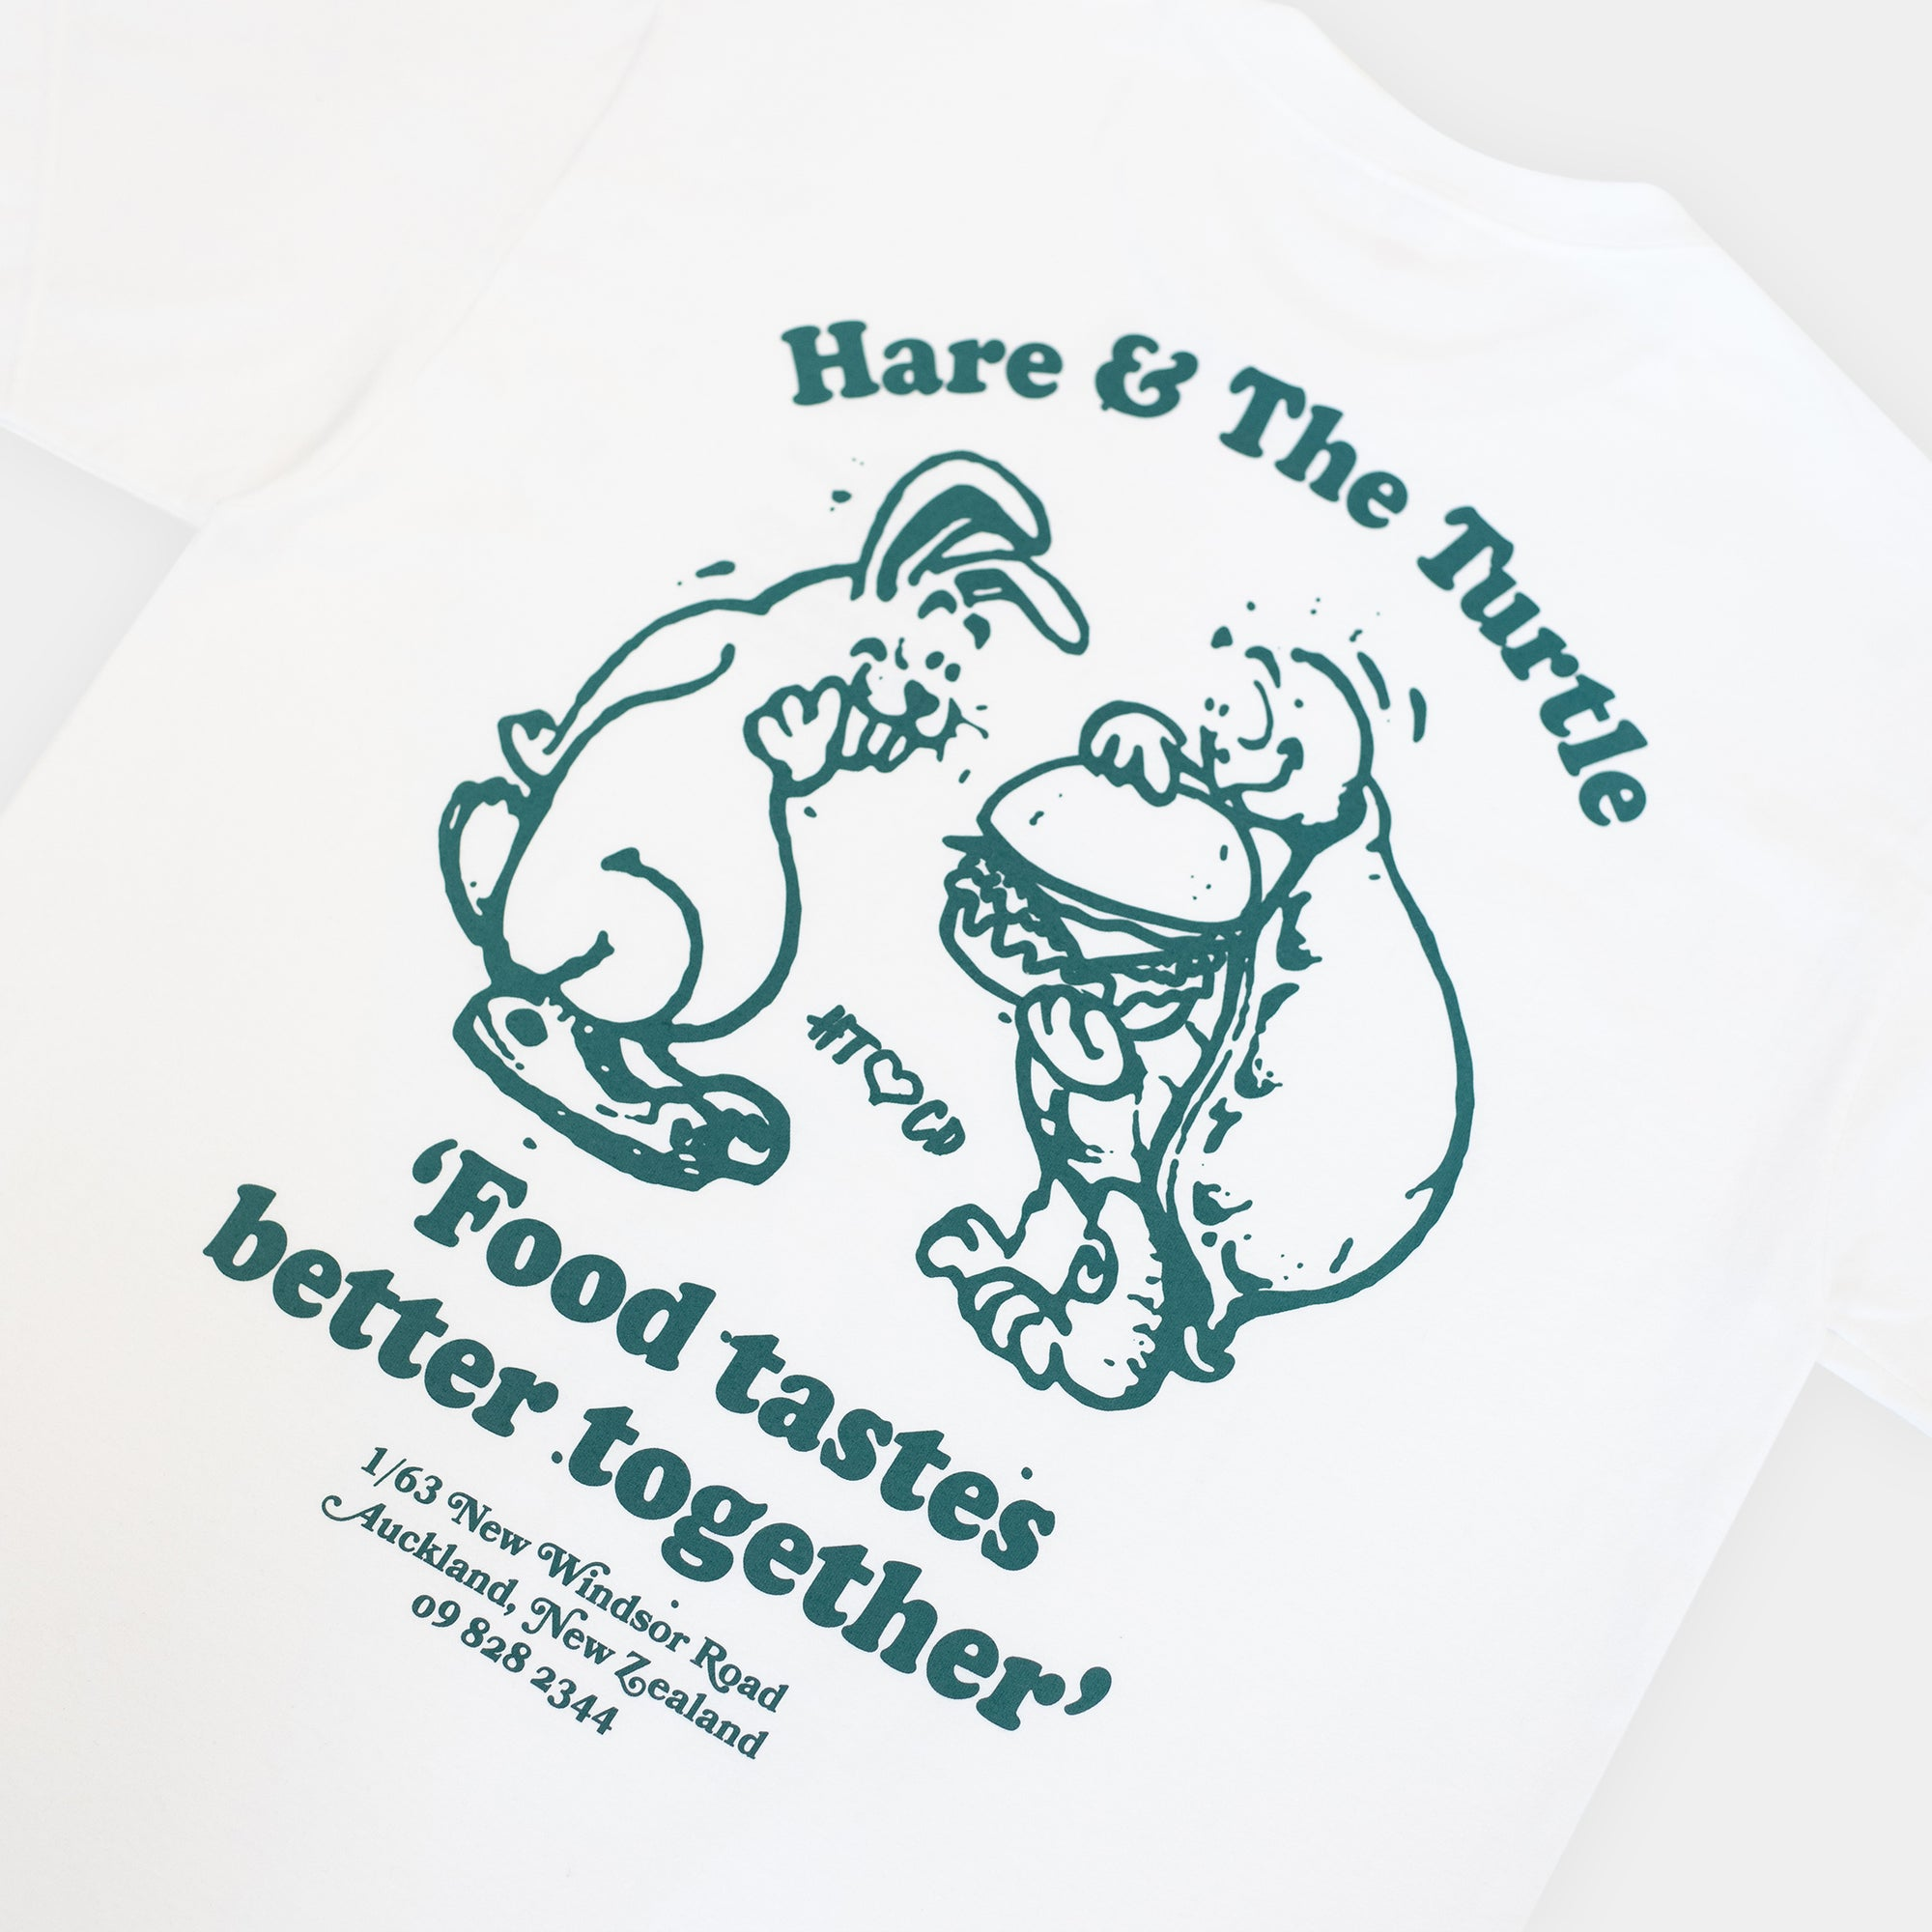 Load image into Gallery viewer, Checks x Hare & The Turtle T-shirt | CHECKS DOWNTOWN